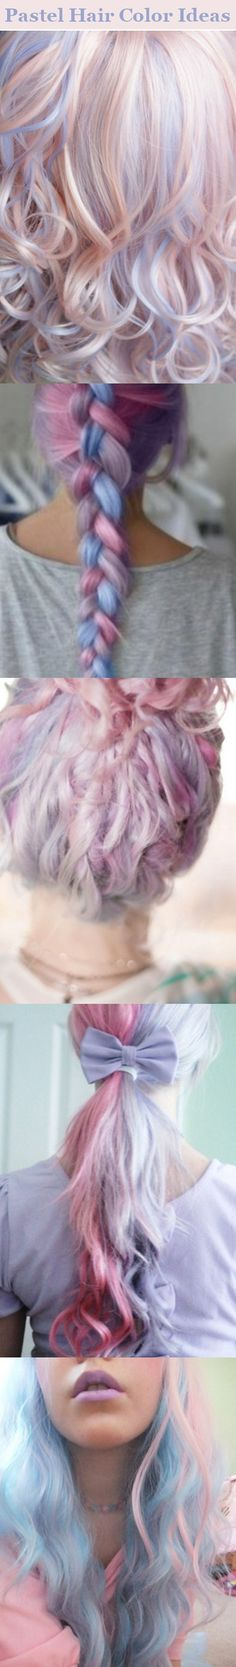 Pastel Hair Color Ideas-- I wish I could pull this off!!